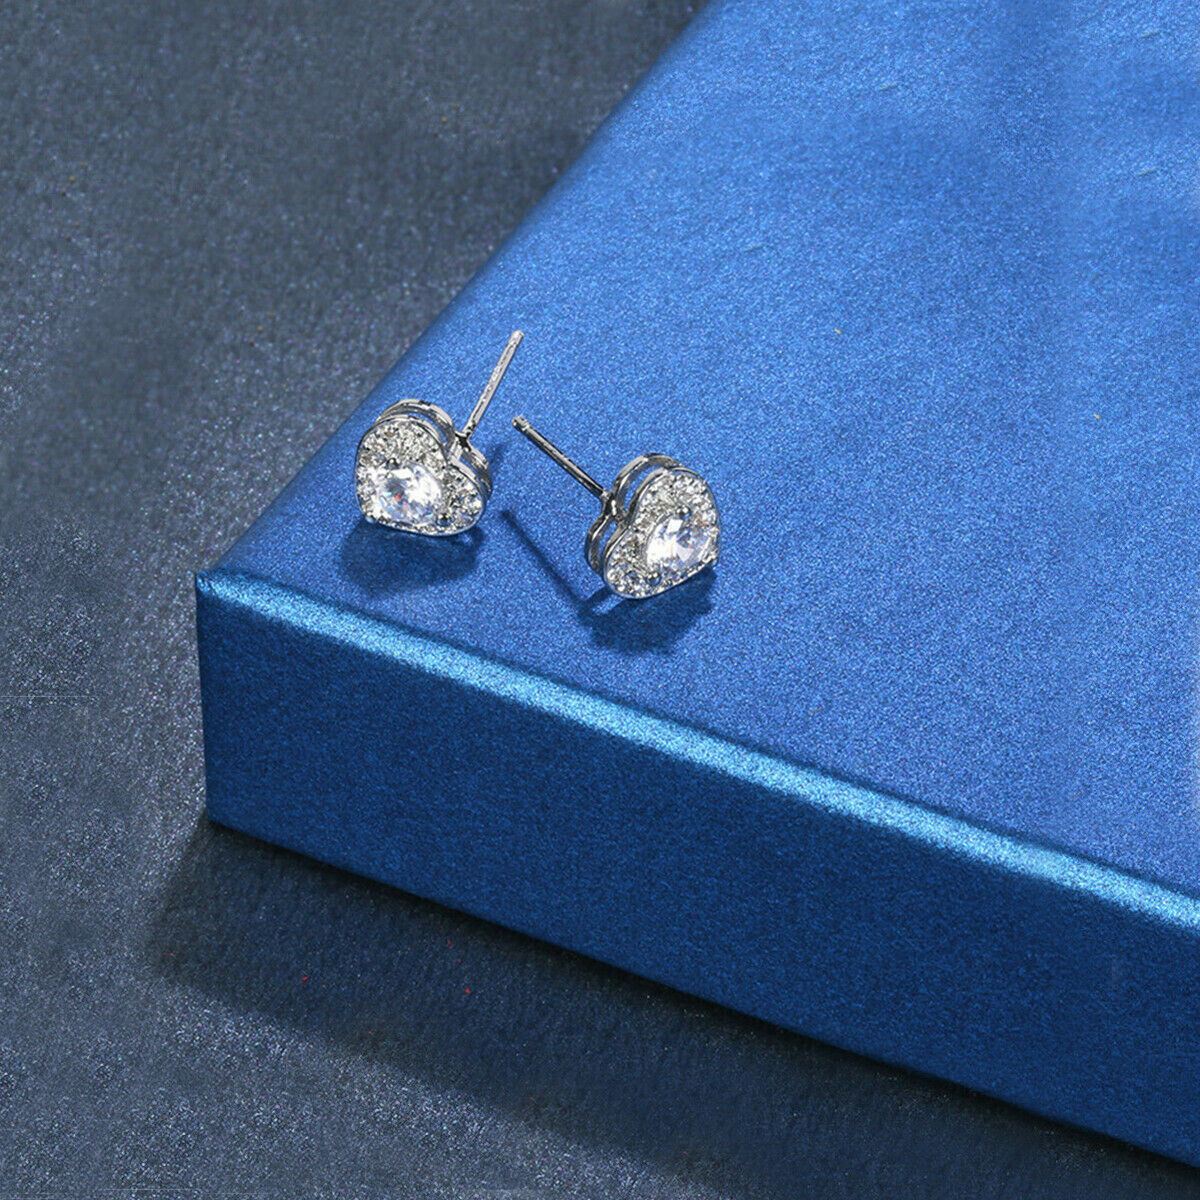 Primary image for Realistic New Fine CZ Sterling Silver 925 Halo Stud Earrings w/ Micro Pave